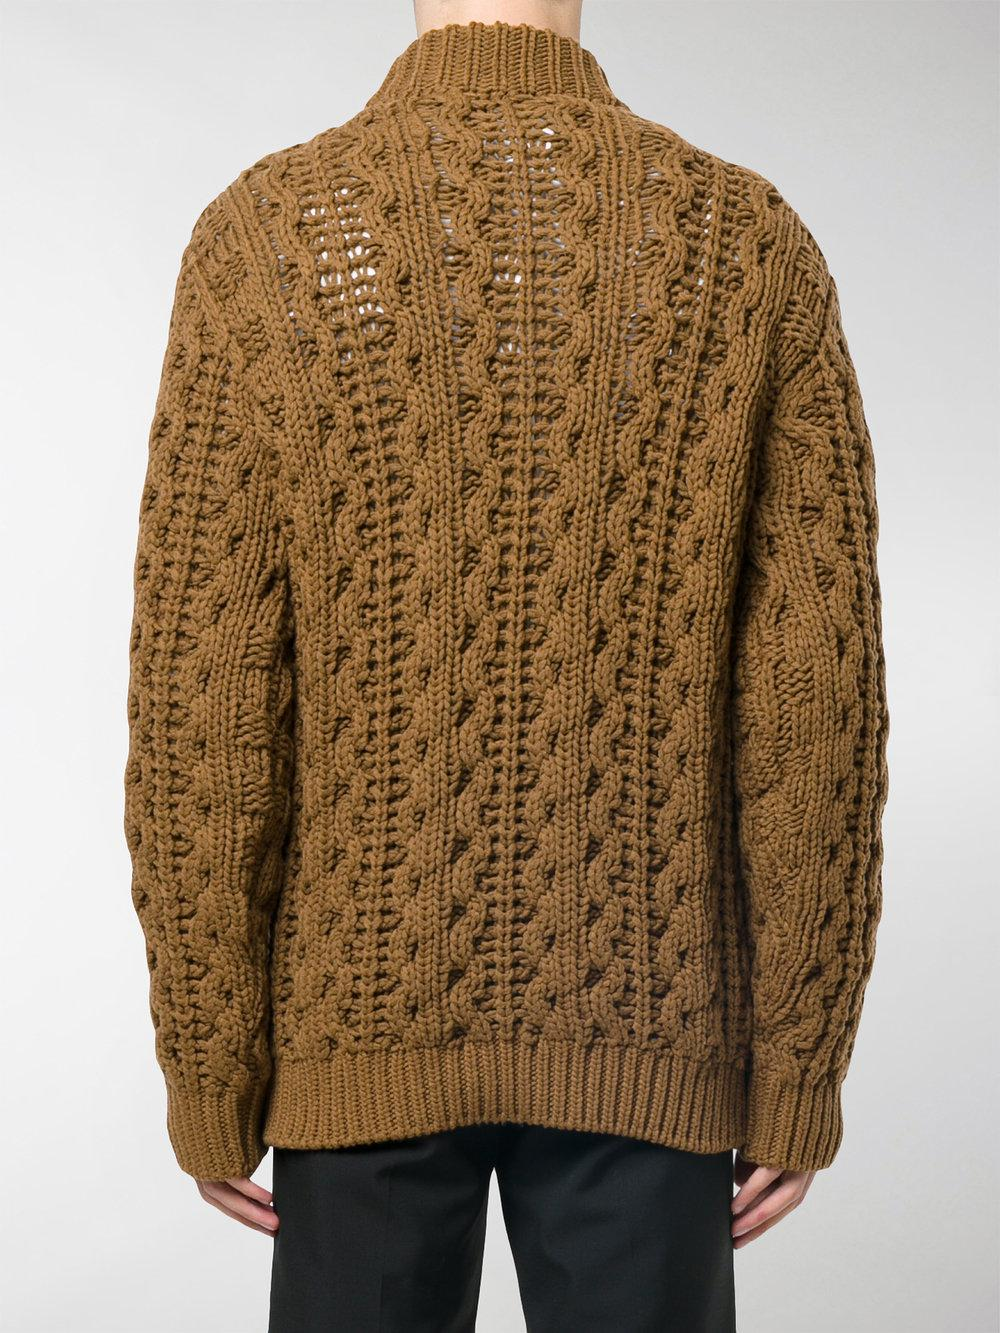 Ferragamo Wool Cable-knit Turtleneck Sweater in Brown for Men